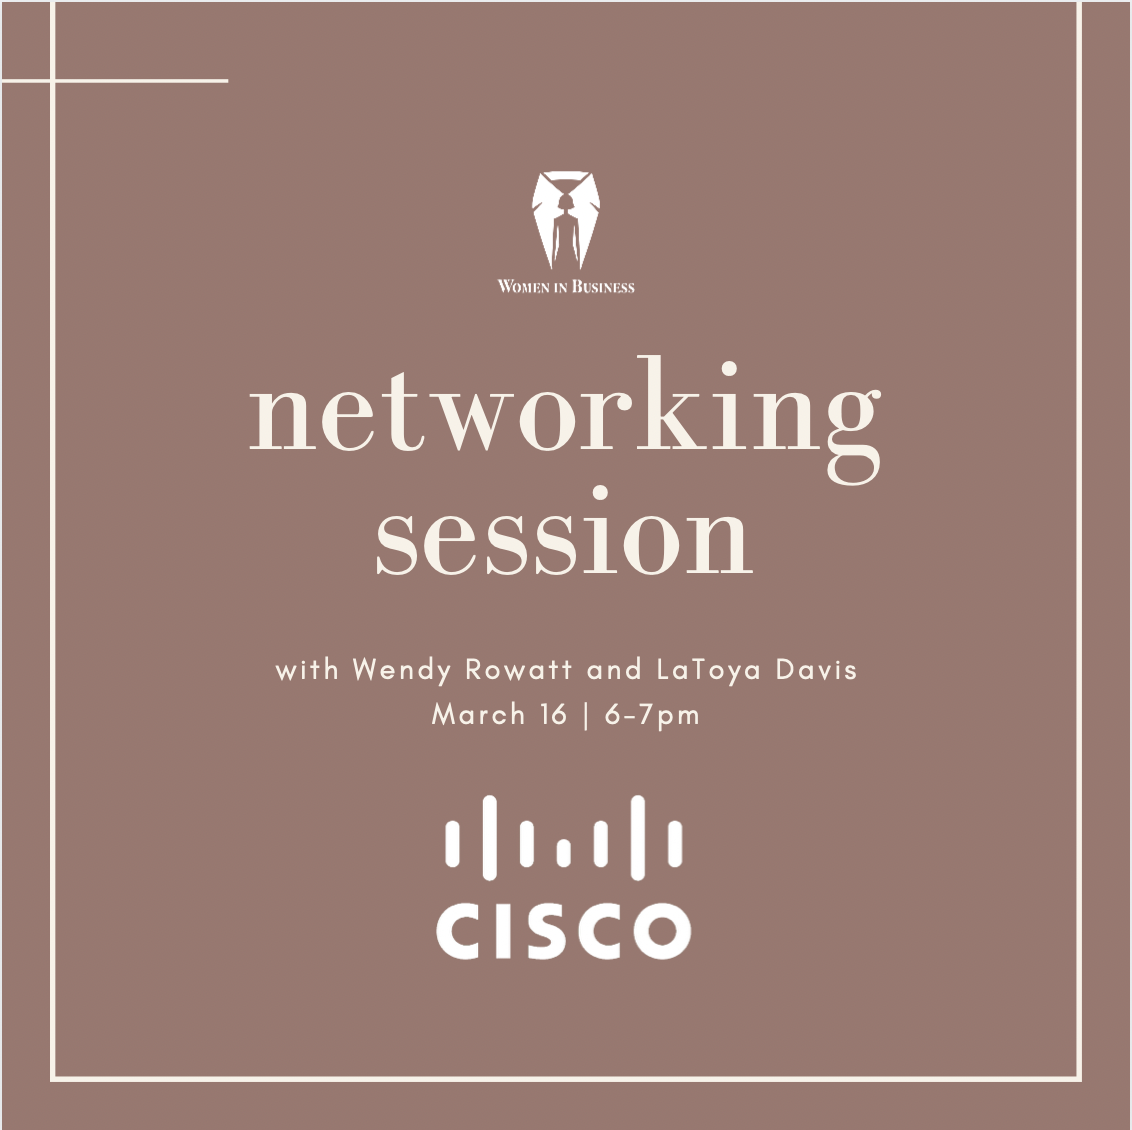 CiscoNetworking